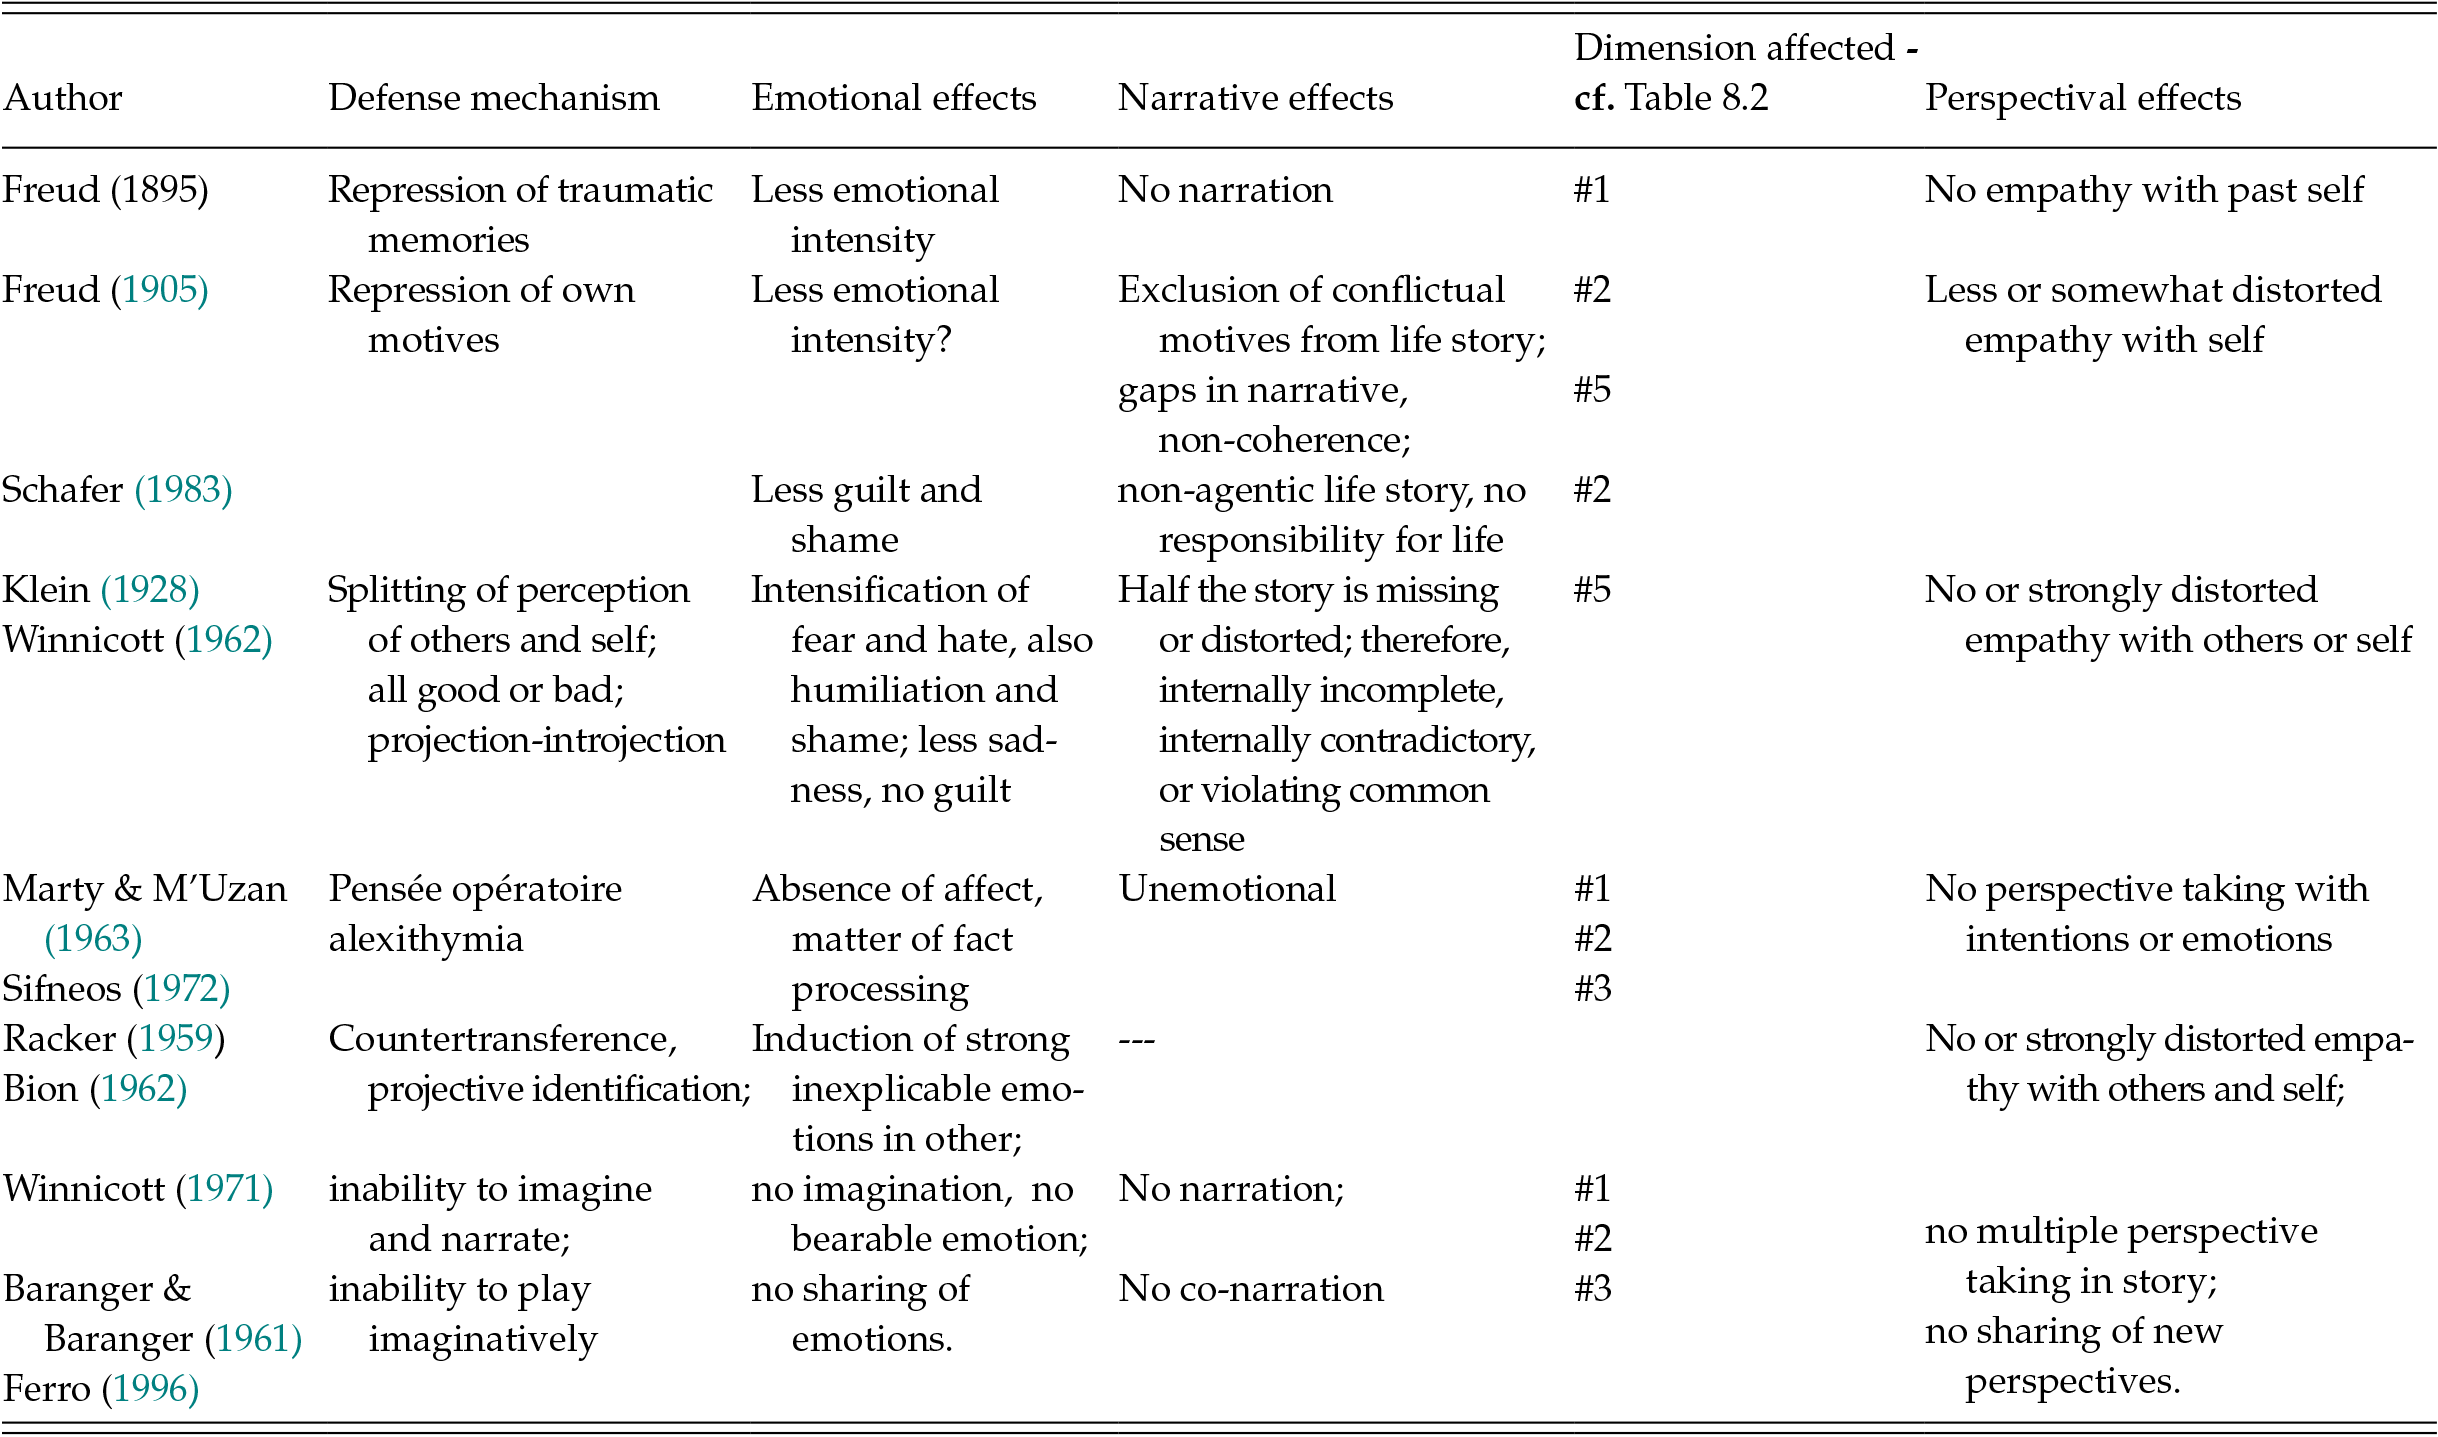 5 Common Defense Mechanisms narratives reflect defense against emotions, and narrating